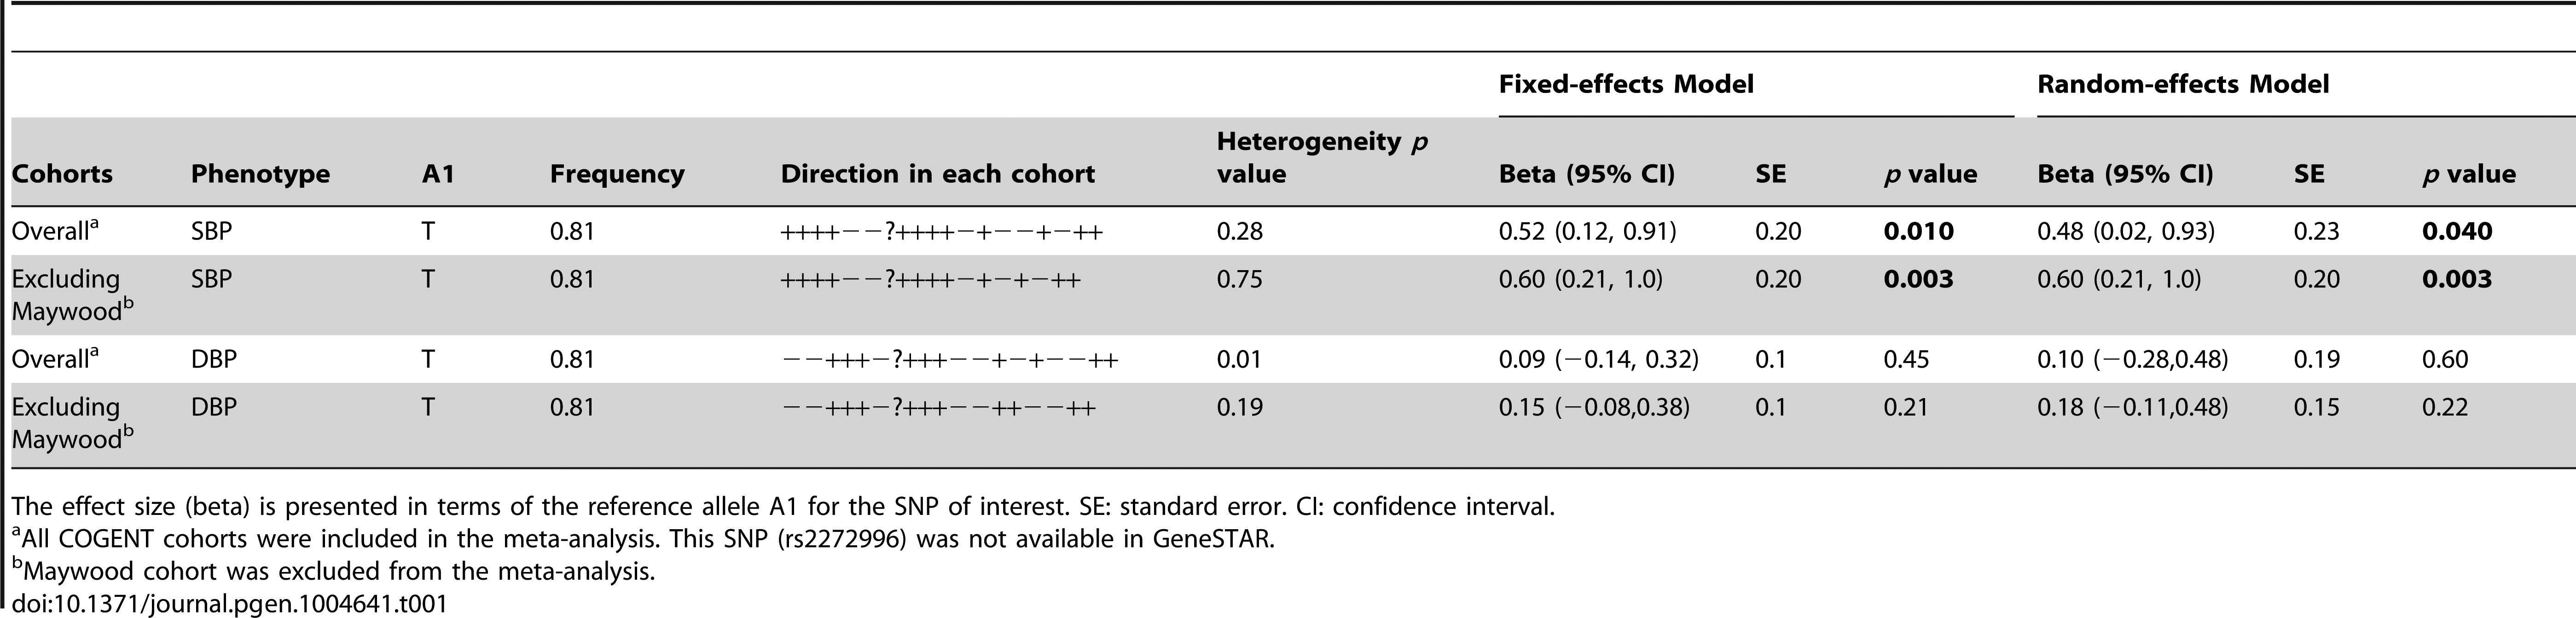 Meta-analysis results of the COGENT cohorts data for SNP rs2272996 (N131S).